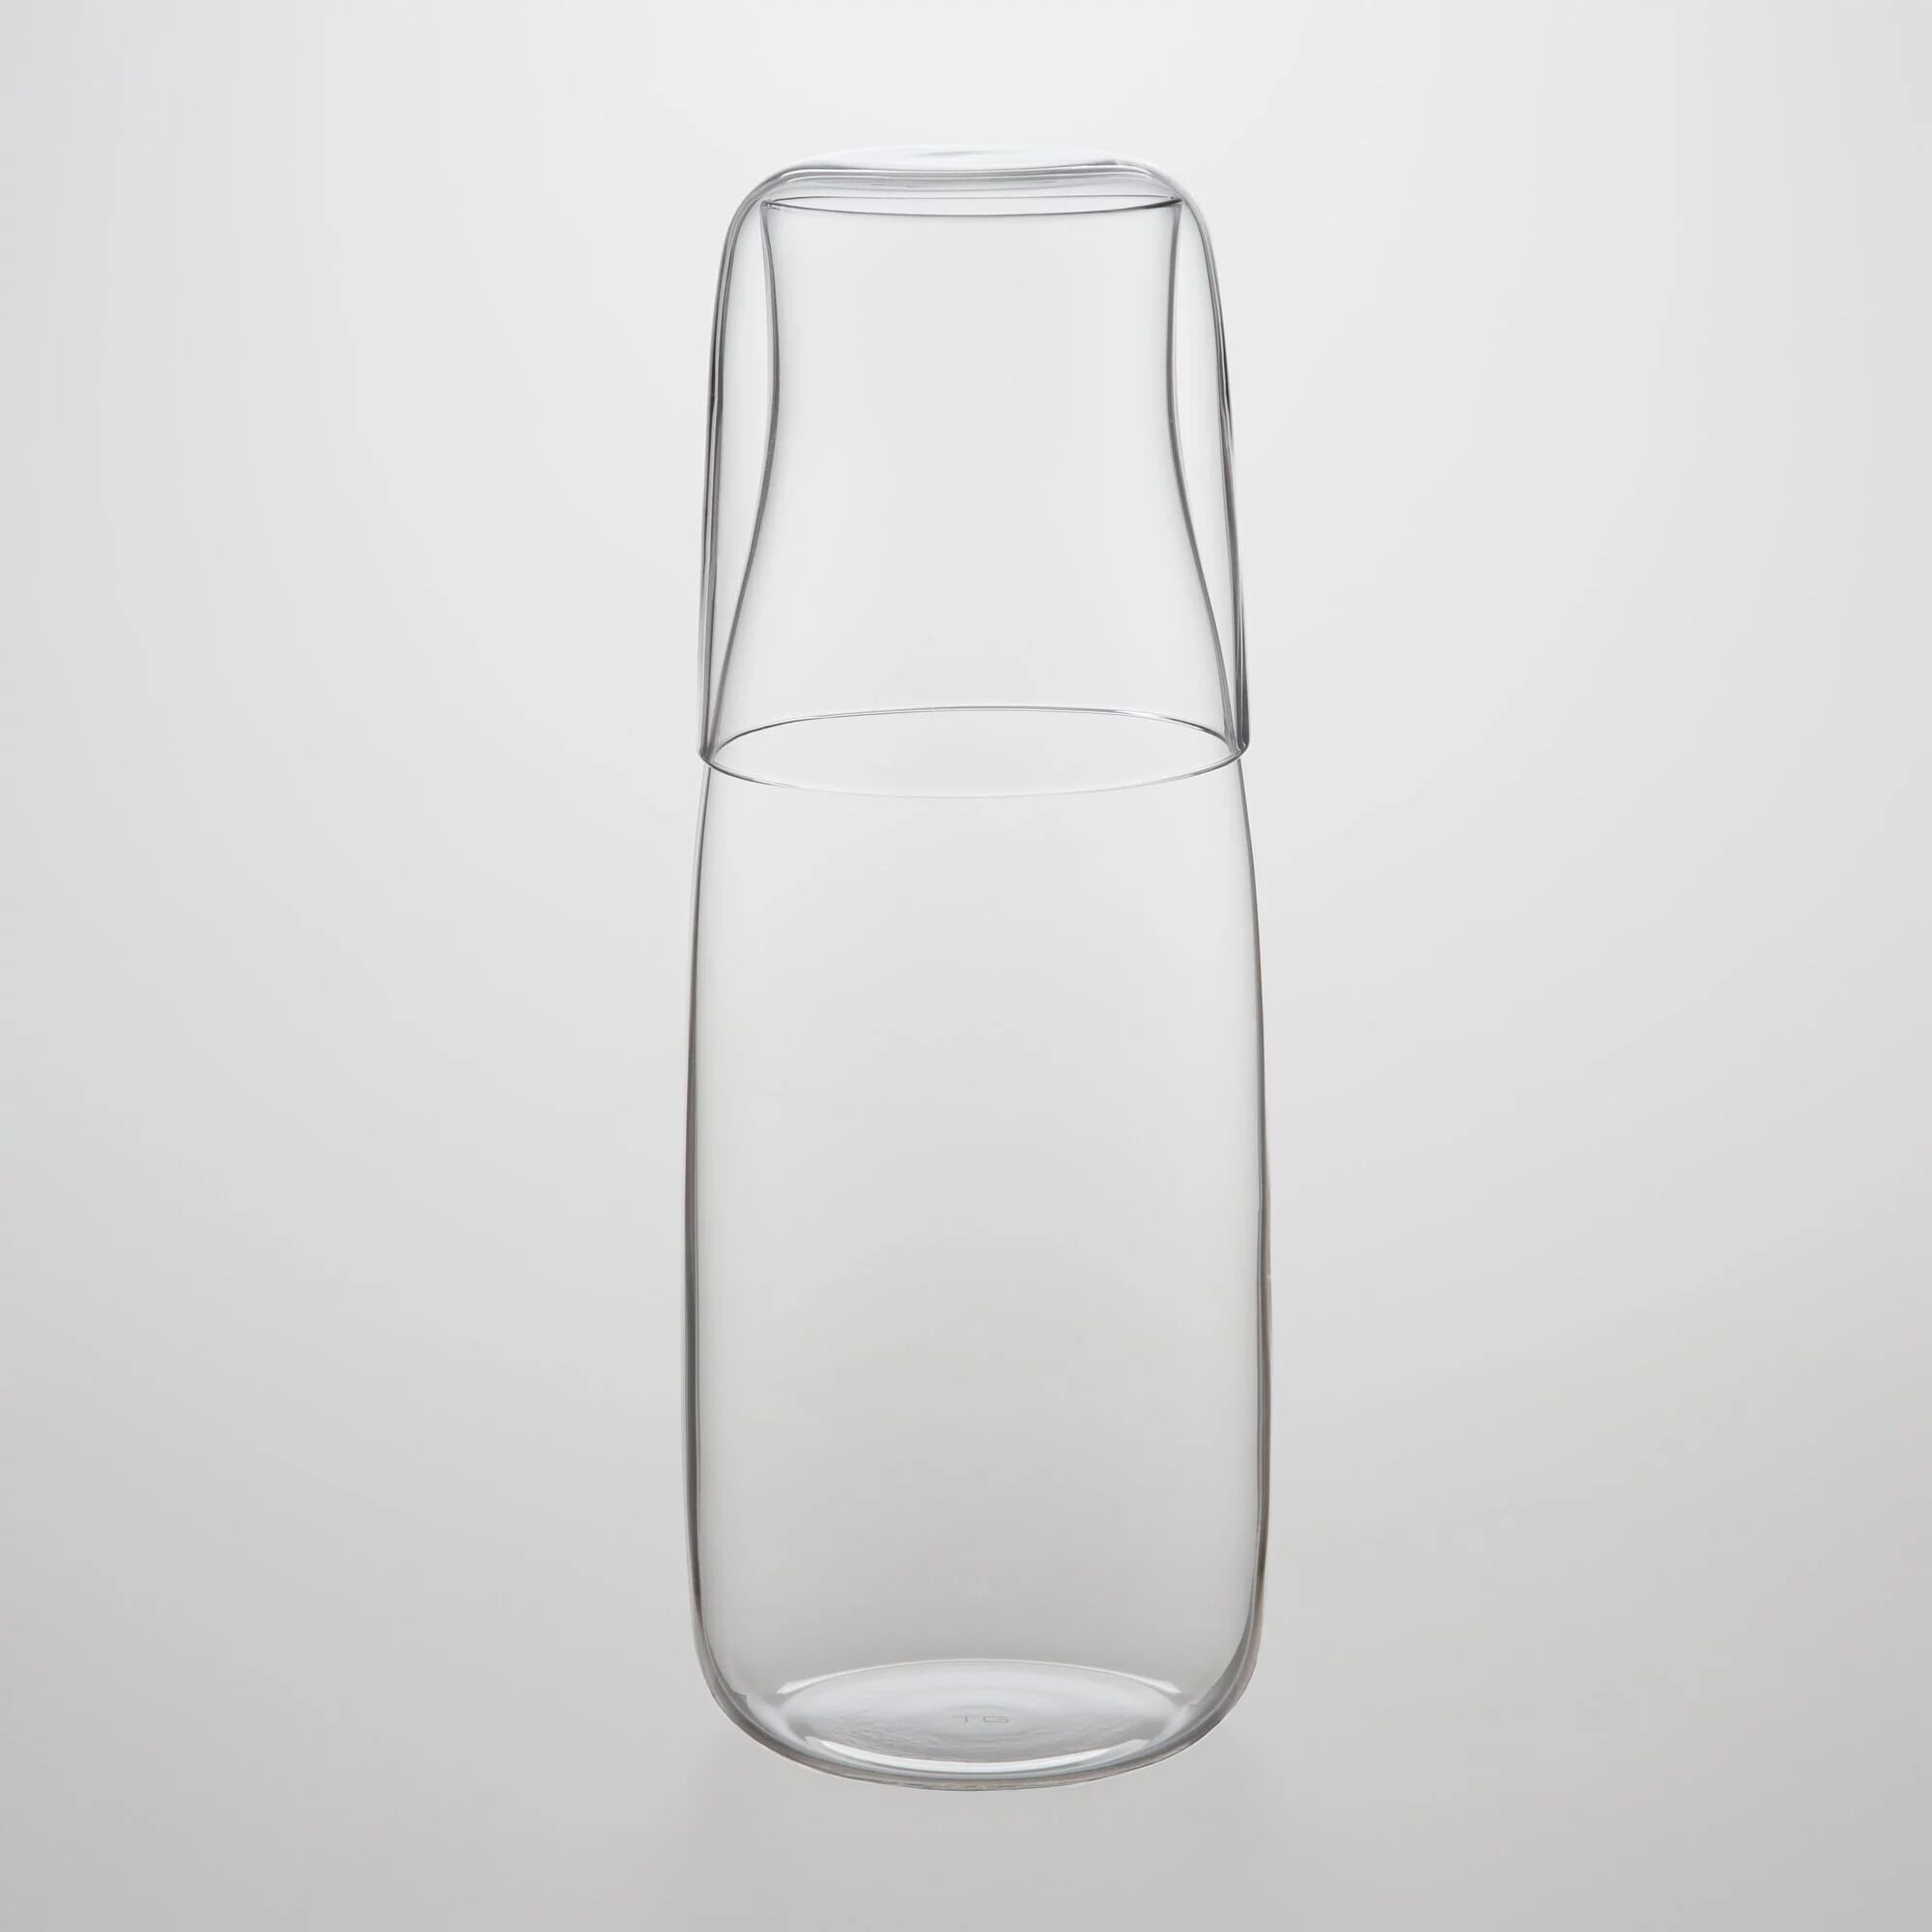 TG glass (ティージーガラス) Water Pitcher and Cup set 760ml (ウォーターピッチャー&カップ)